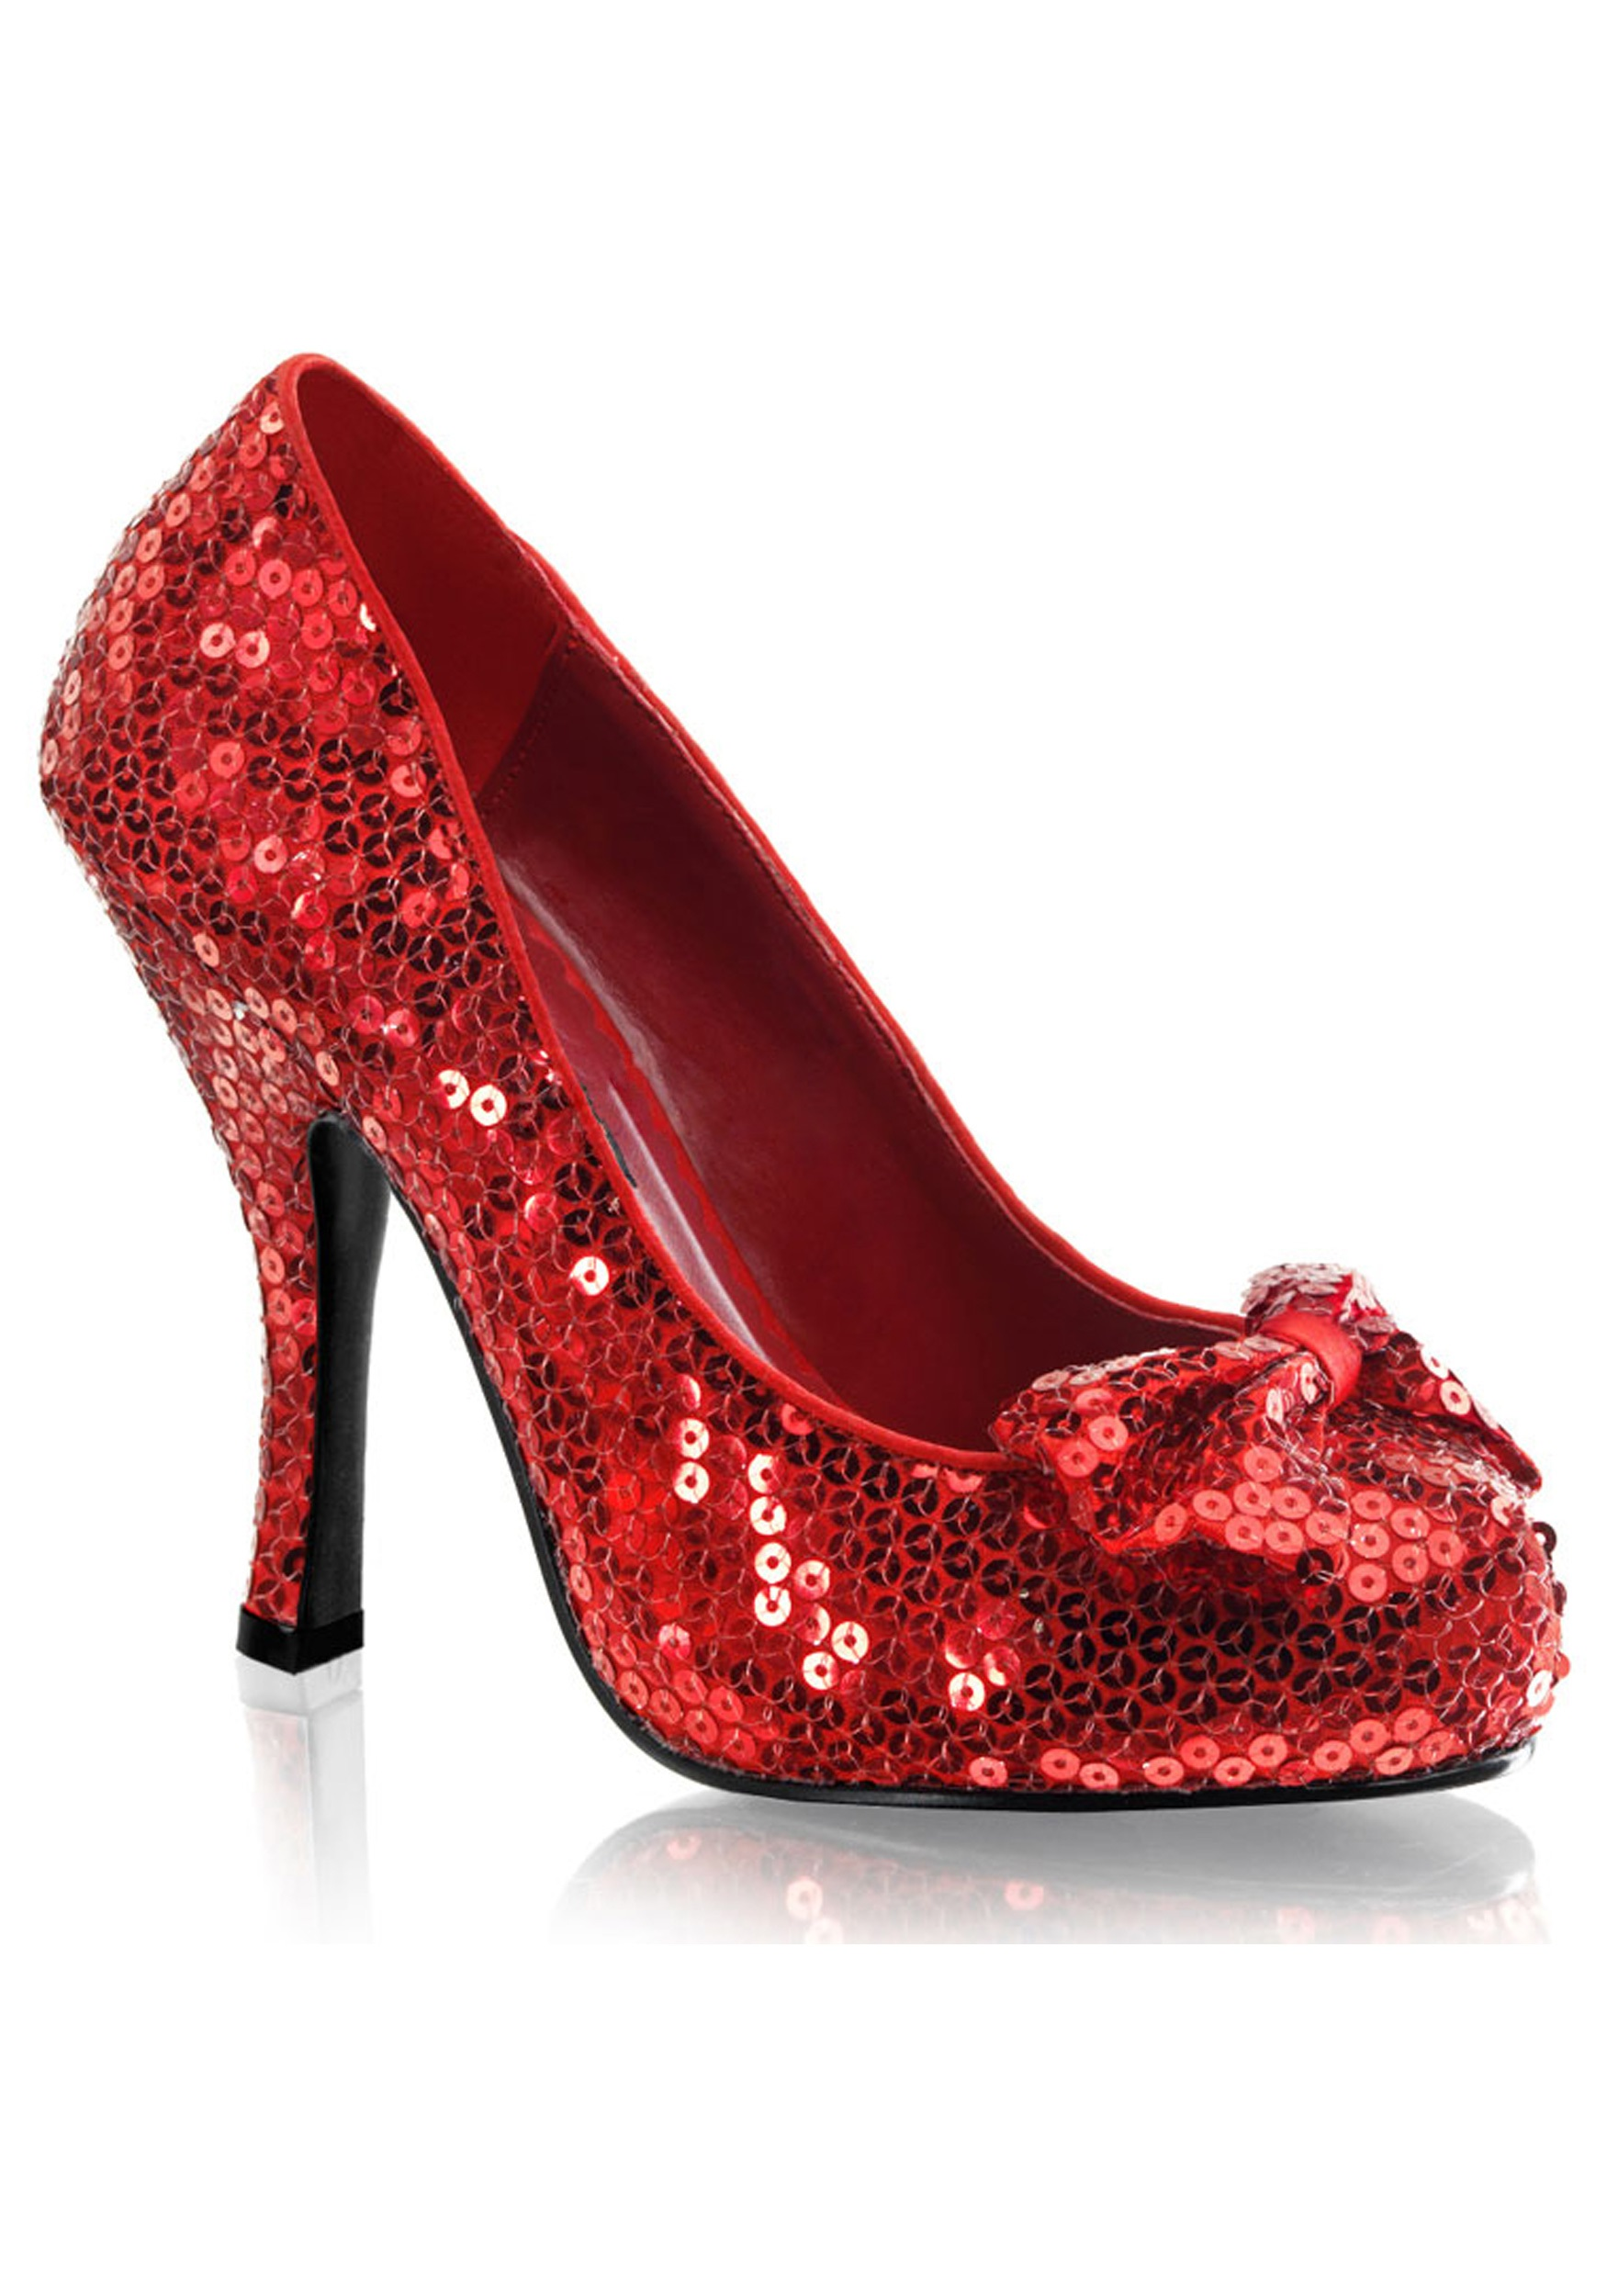 Charming Red High Heel